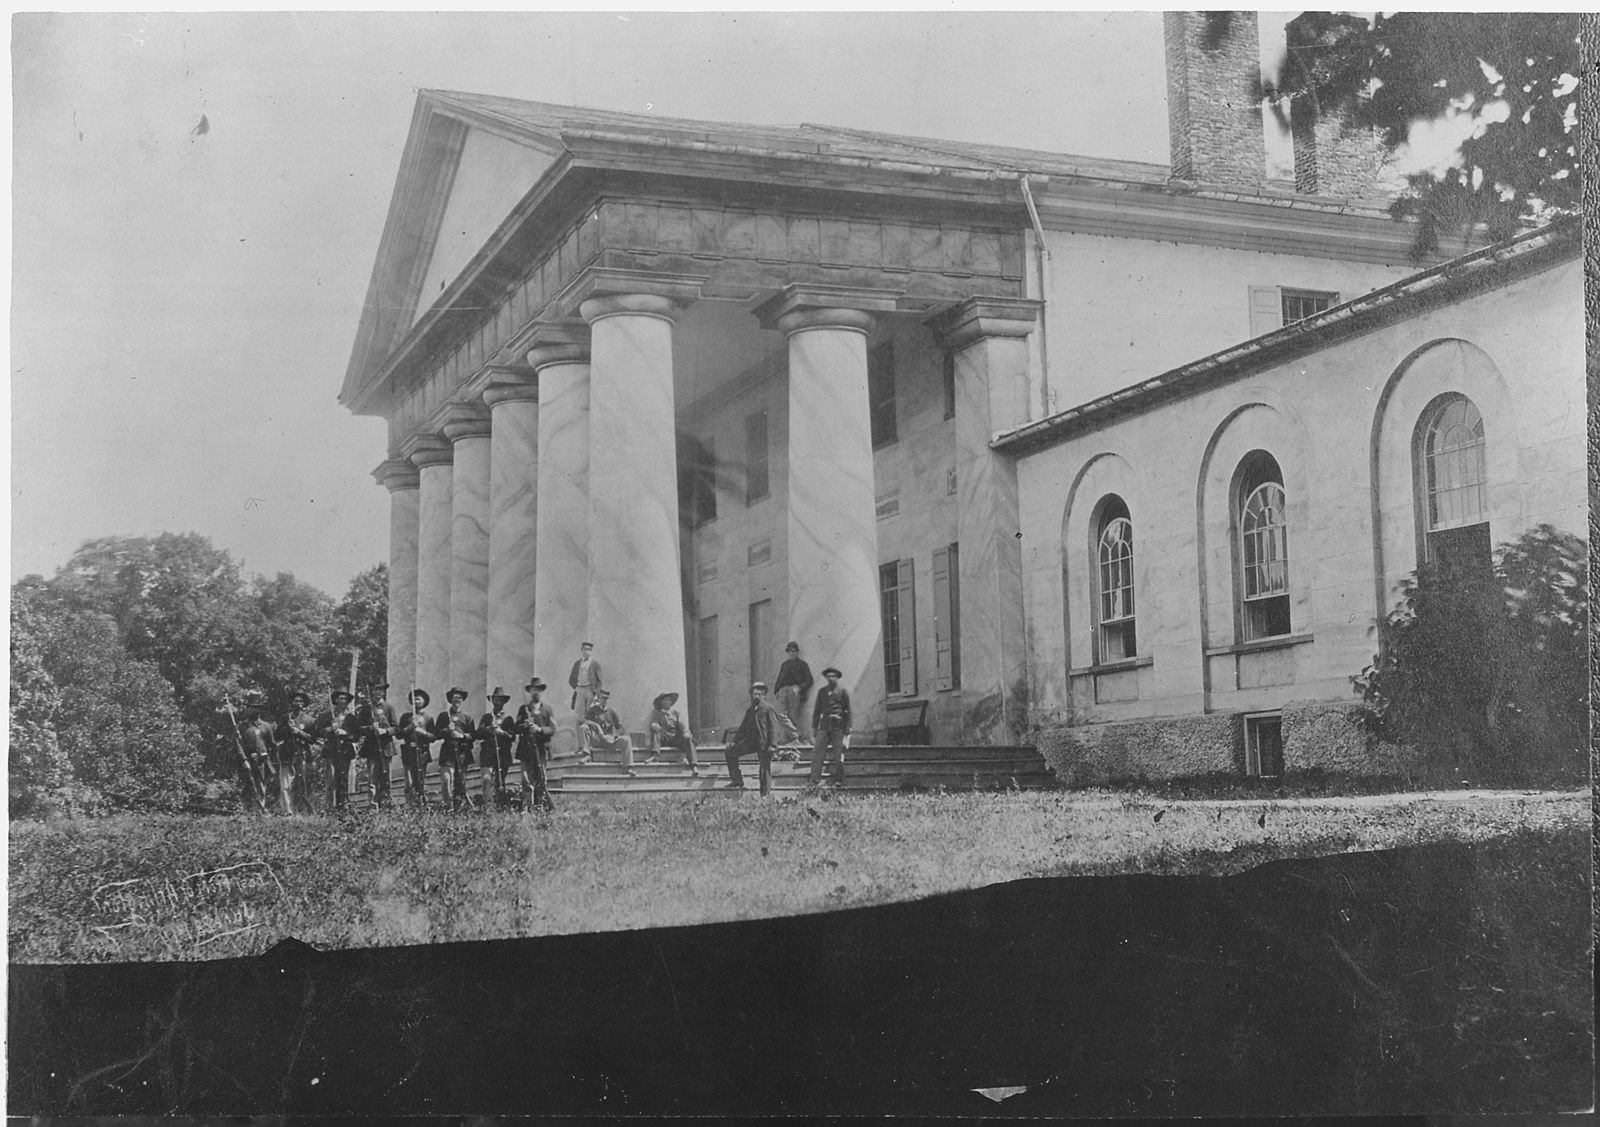 Arlington House came under Union occupation beginning in May 1861. In this image from 1864, Union soldiers pose on the grand front porch of the mansion. National Archives.